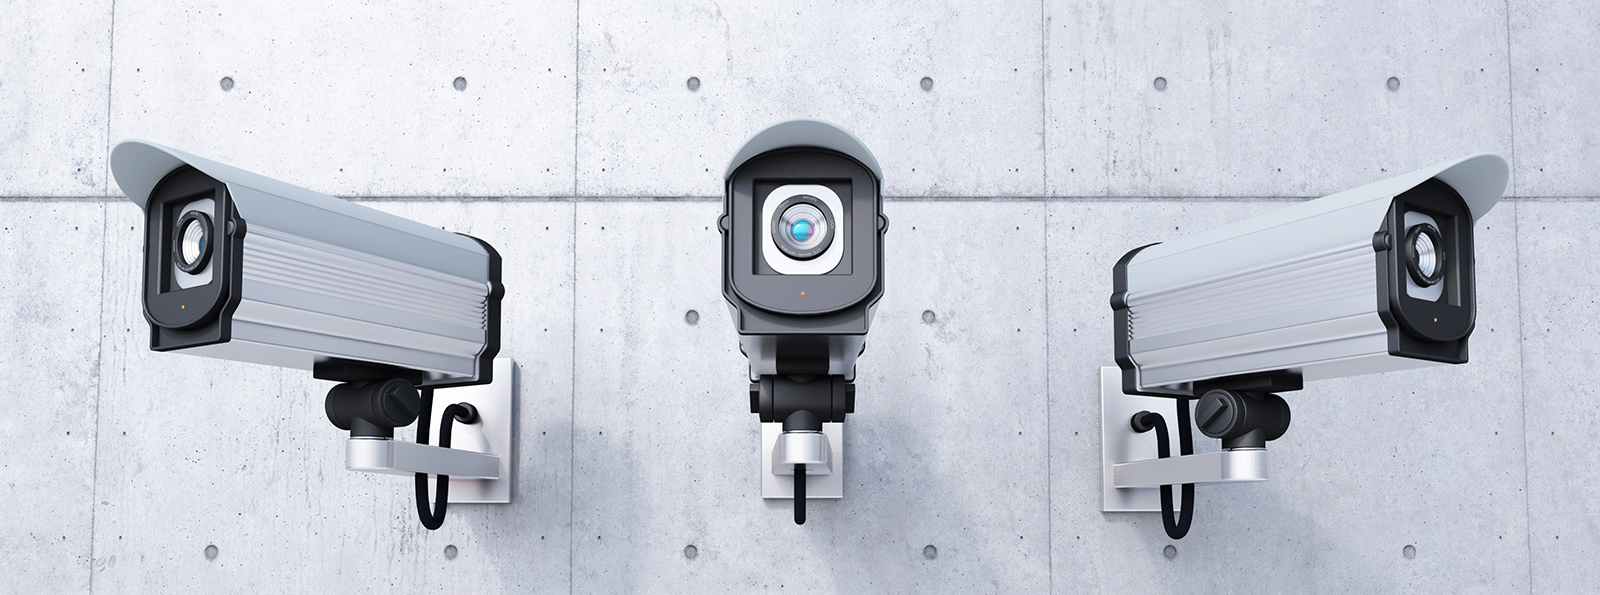 Jackson security camera systems